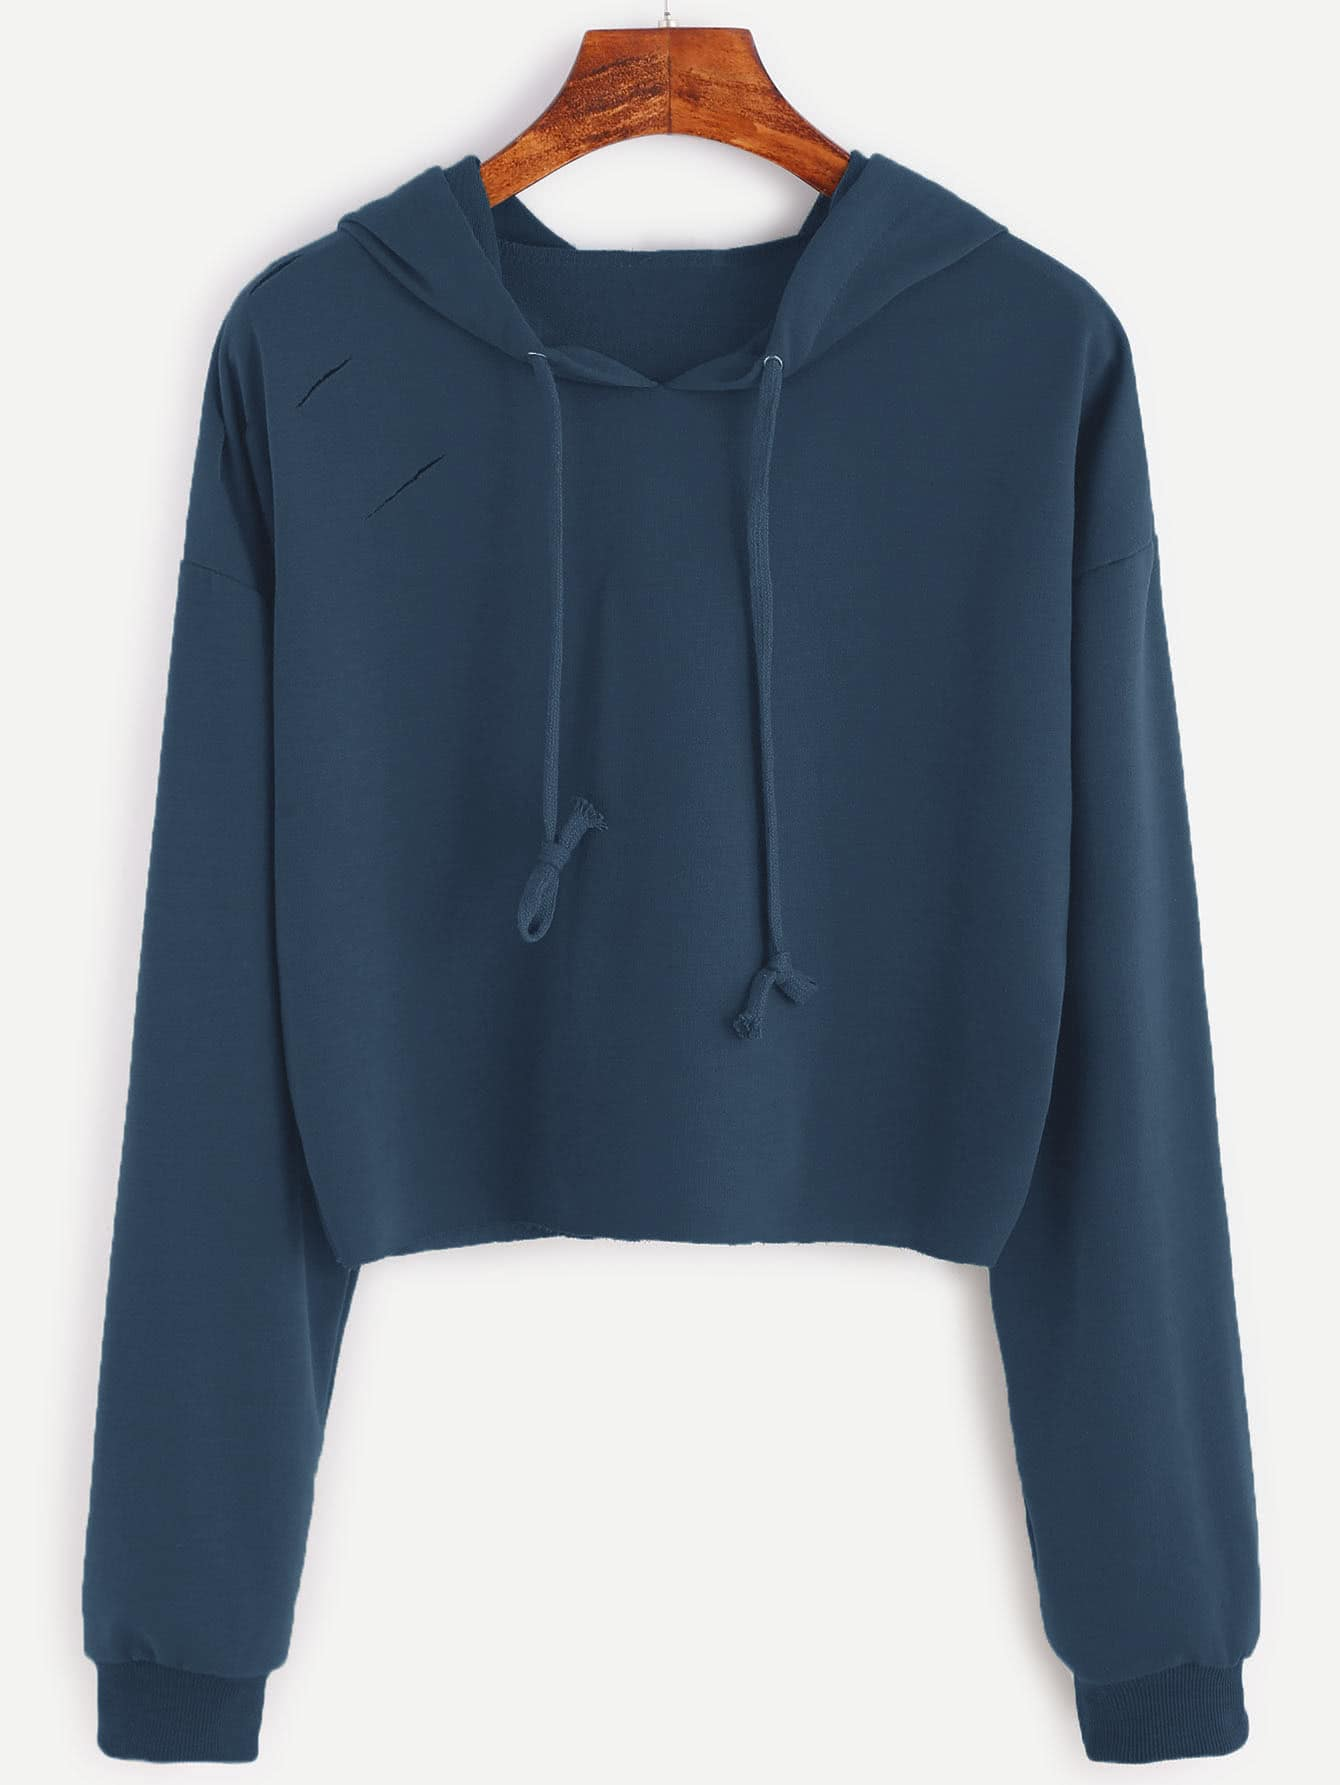 Drop Shoulder Ripped Hooded Crop Sweatshirt drop shoulder crop sweatshirt